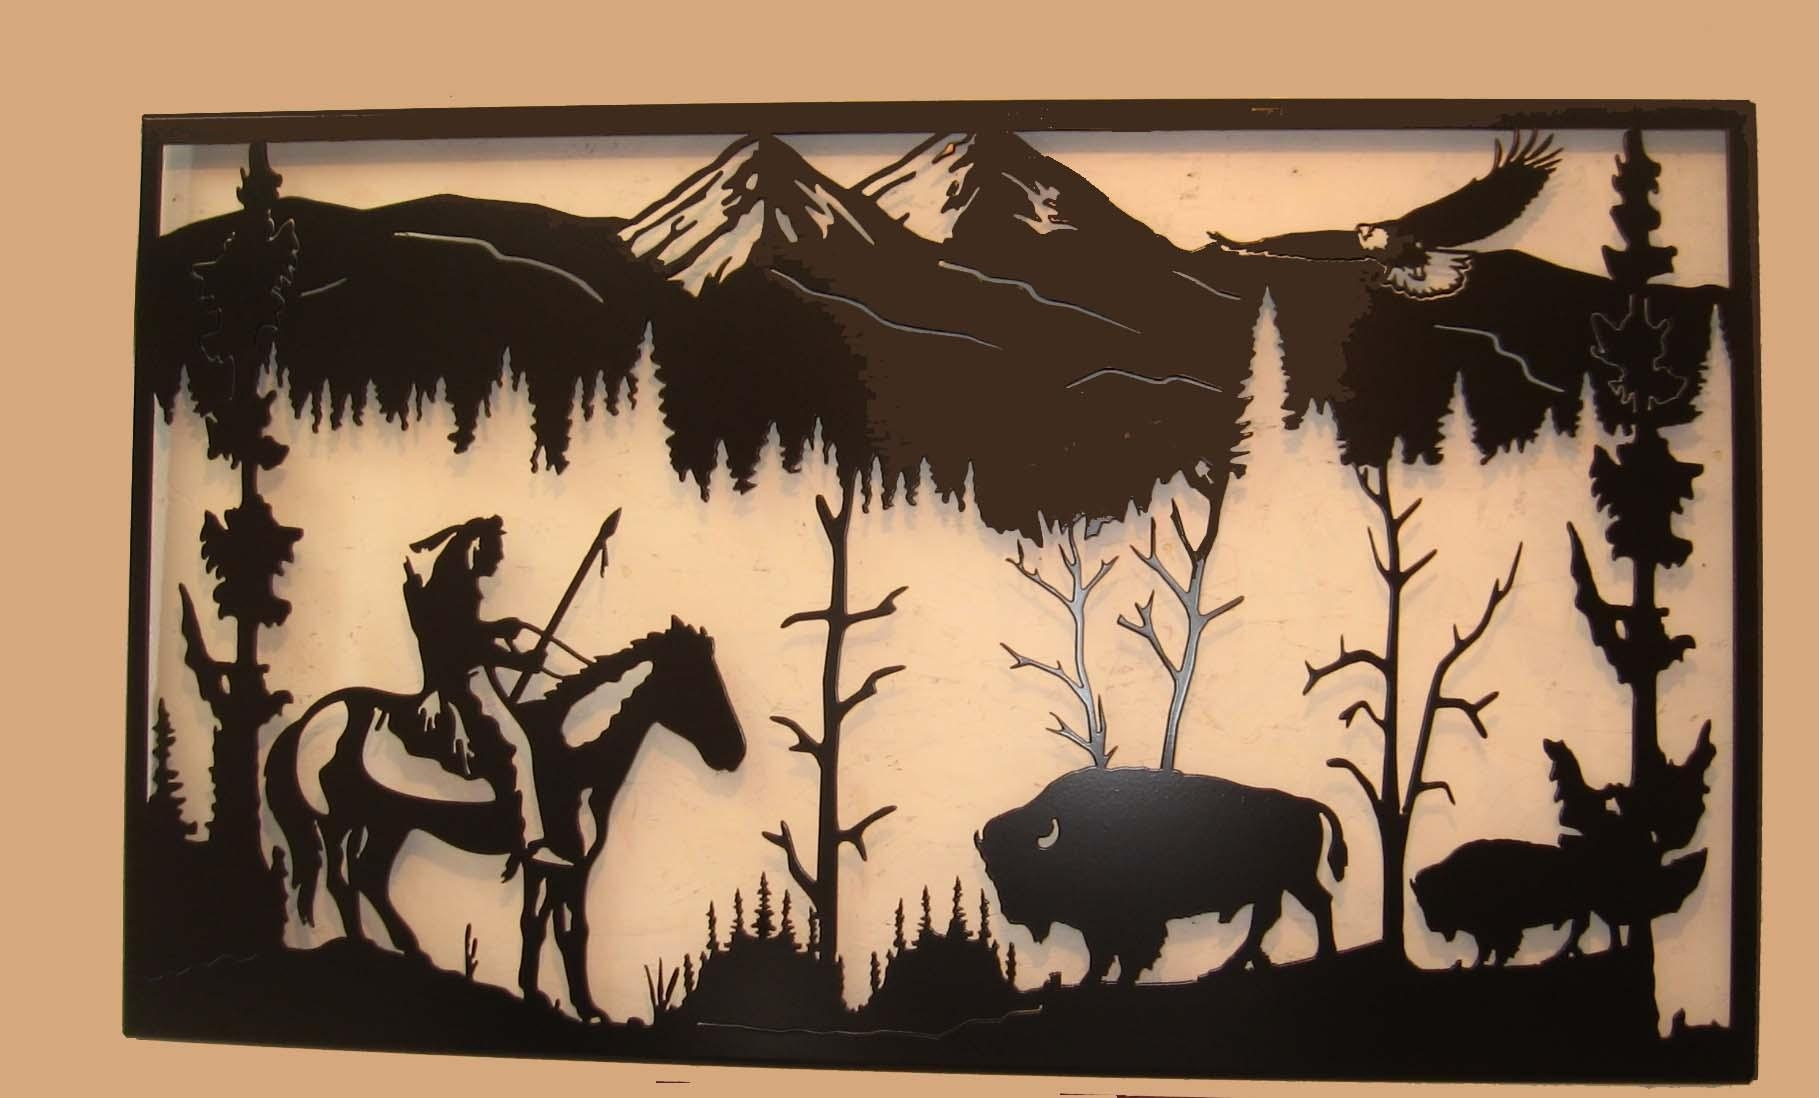 S & L Enterprises – Western Wall Art Pertaining To Western Metal Wall Art Silhouettes (Image 12 of 20)